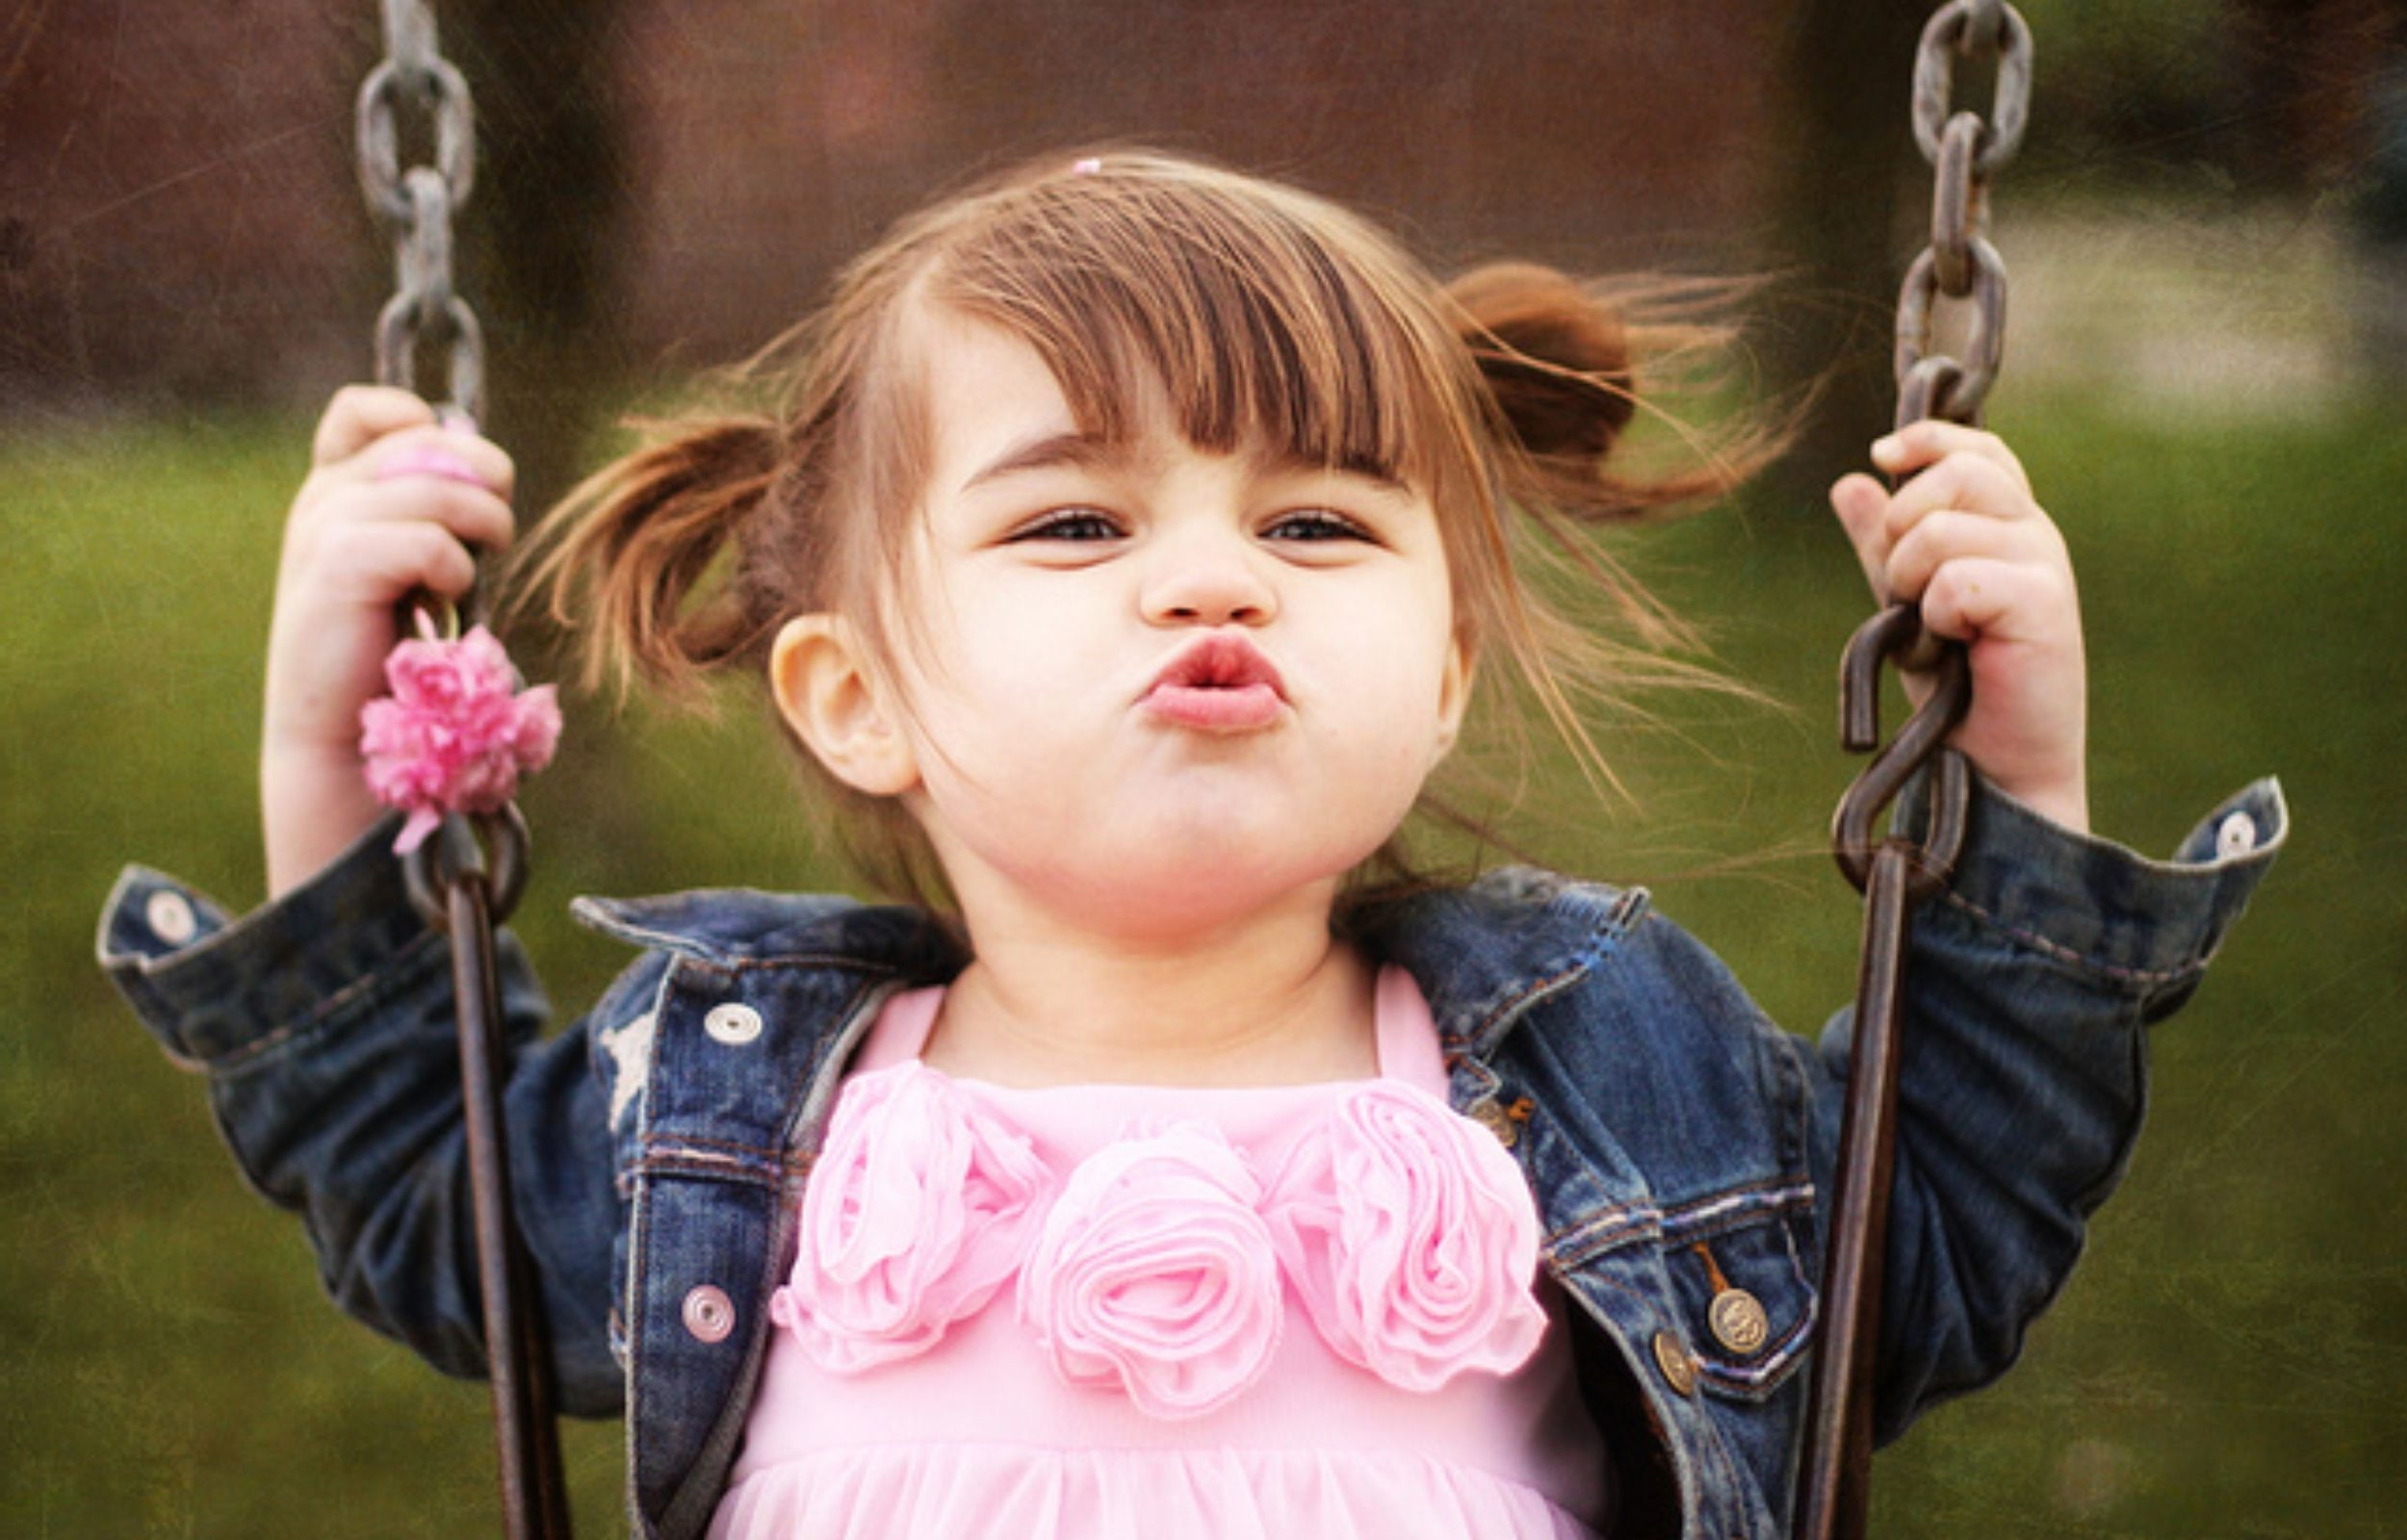 Baby Girl Pics Find Best Latest Baby Girl Pics For Your Pc Desktop Background Amp Mobile Phones Cute Baby Wallpaper Cute Baby Girl Wallpaper Baby Girl Images